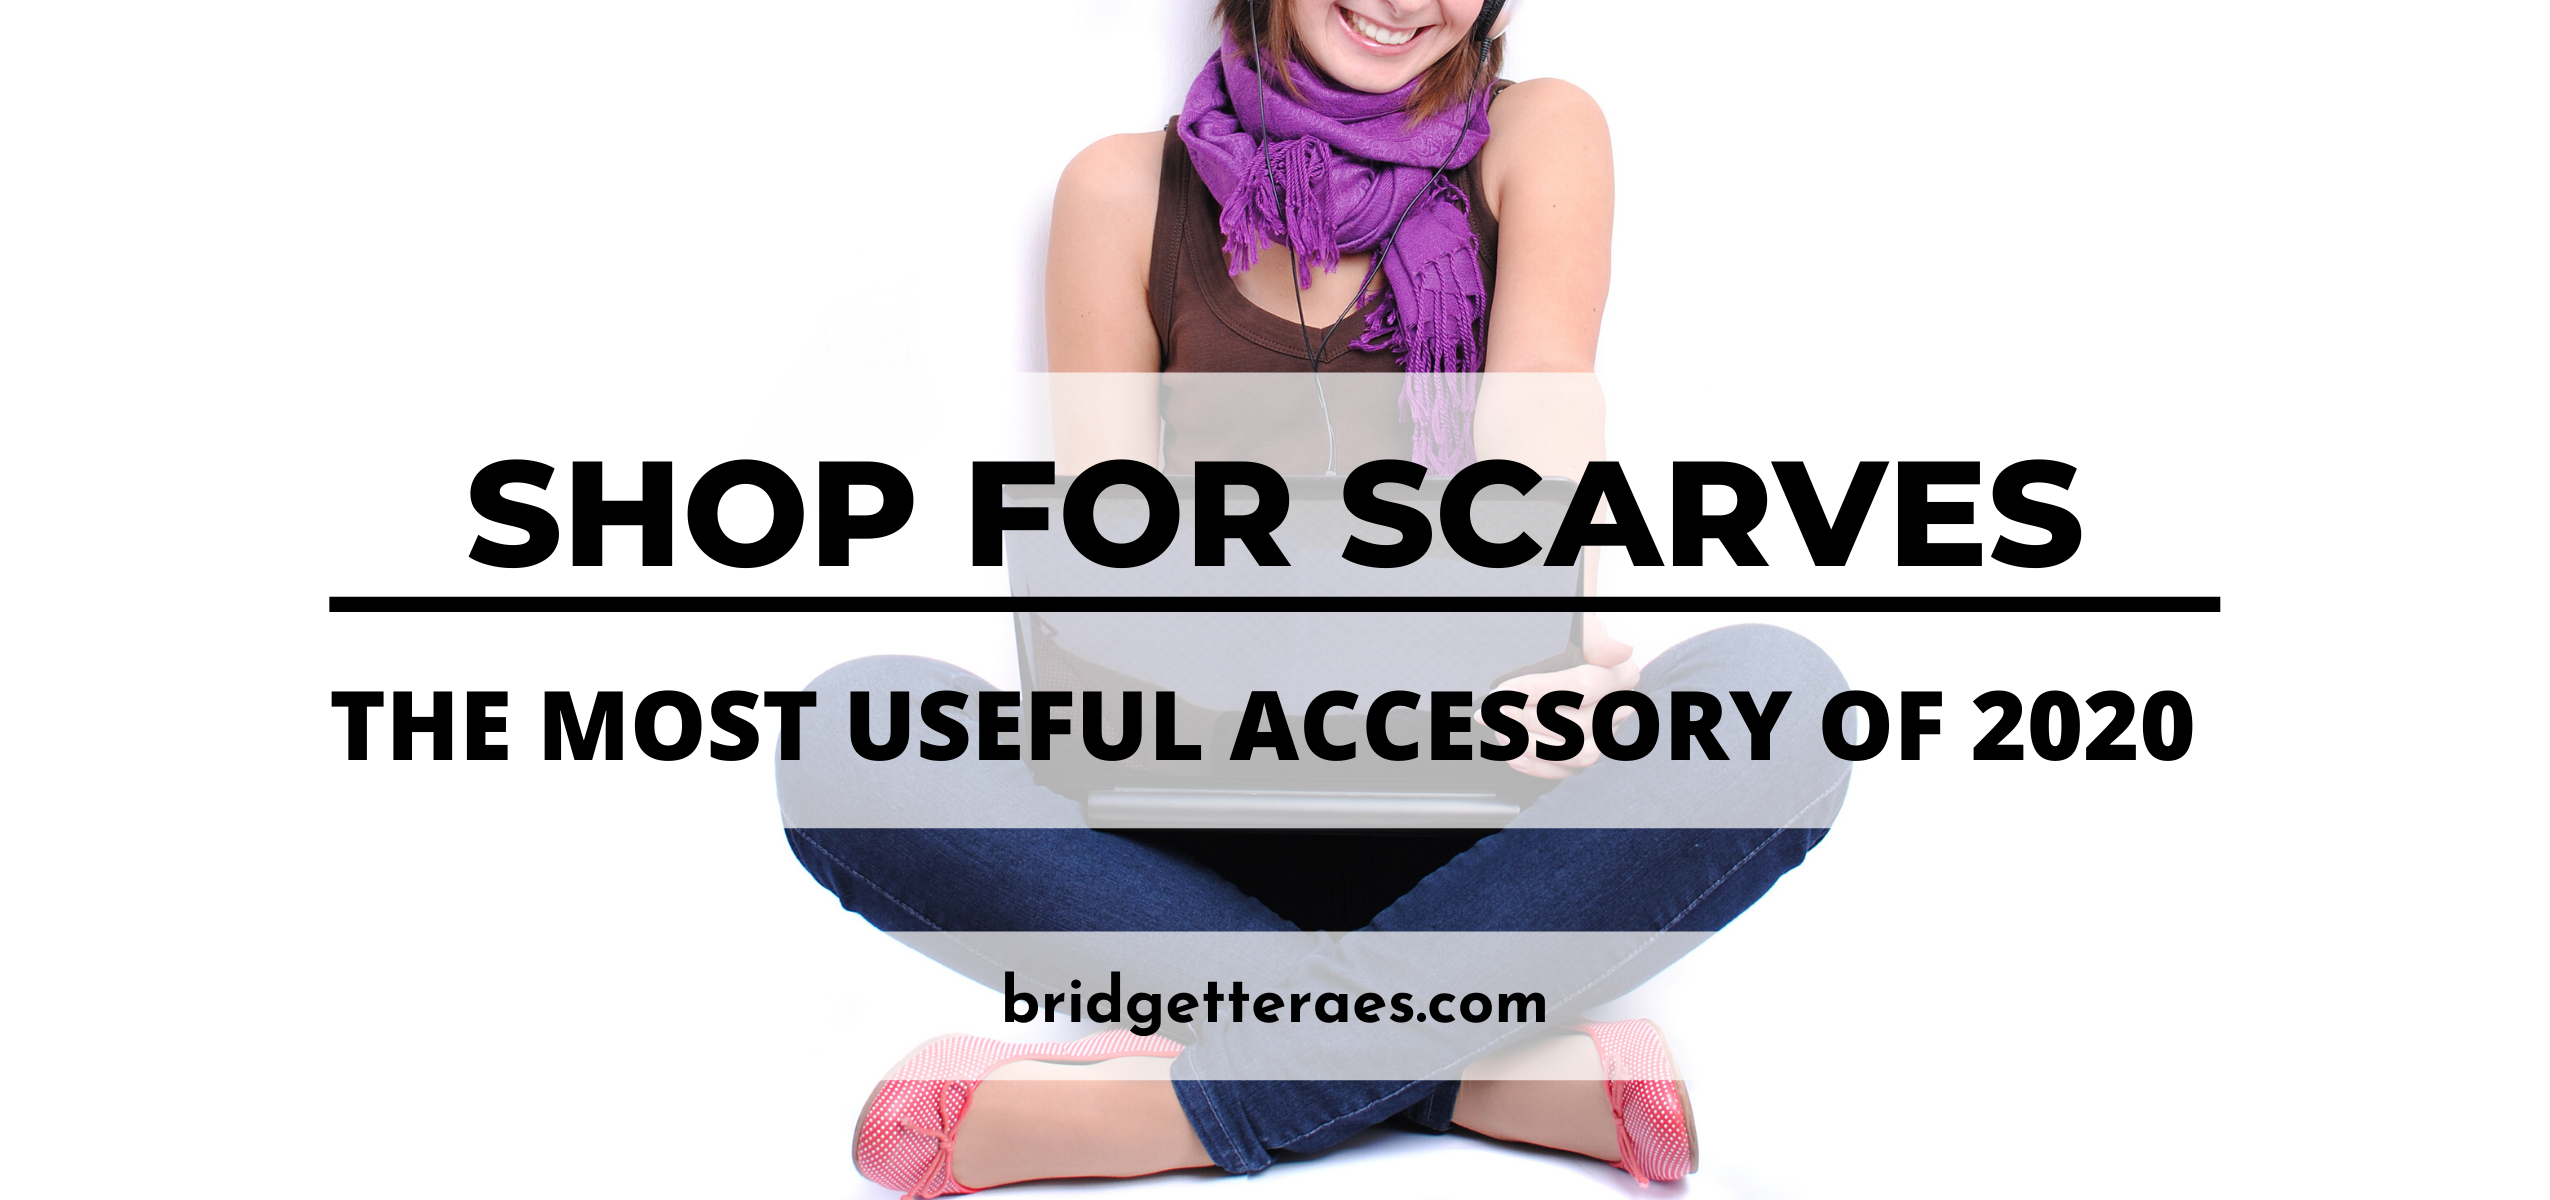 Shop for Scarves: The Most Useful Accessory of 2020